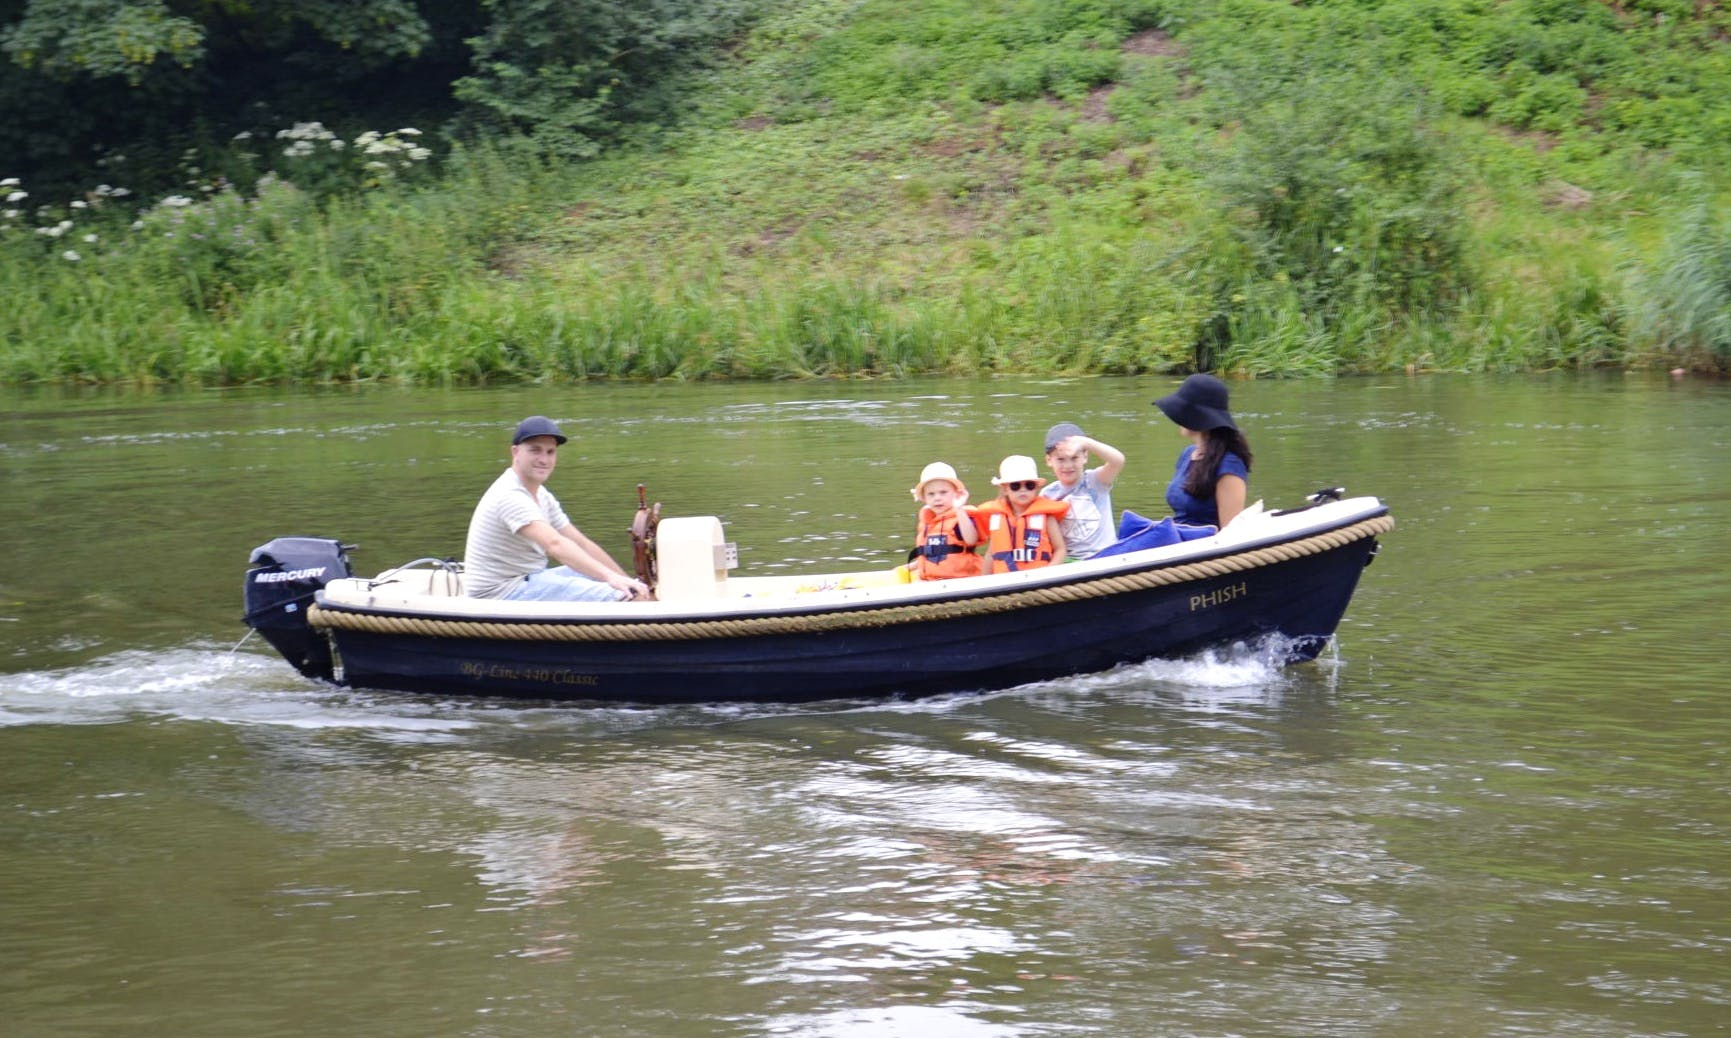 Enjoy your day on the water in Gelderland, Netherlands on this Canal Boat